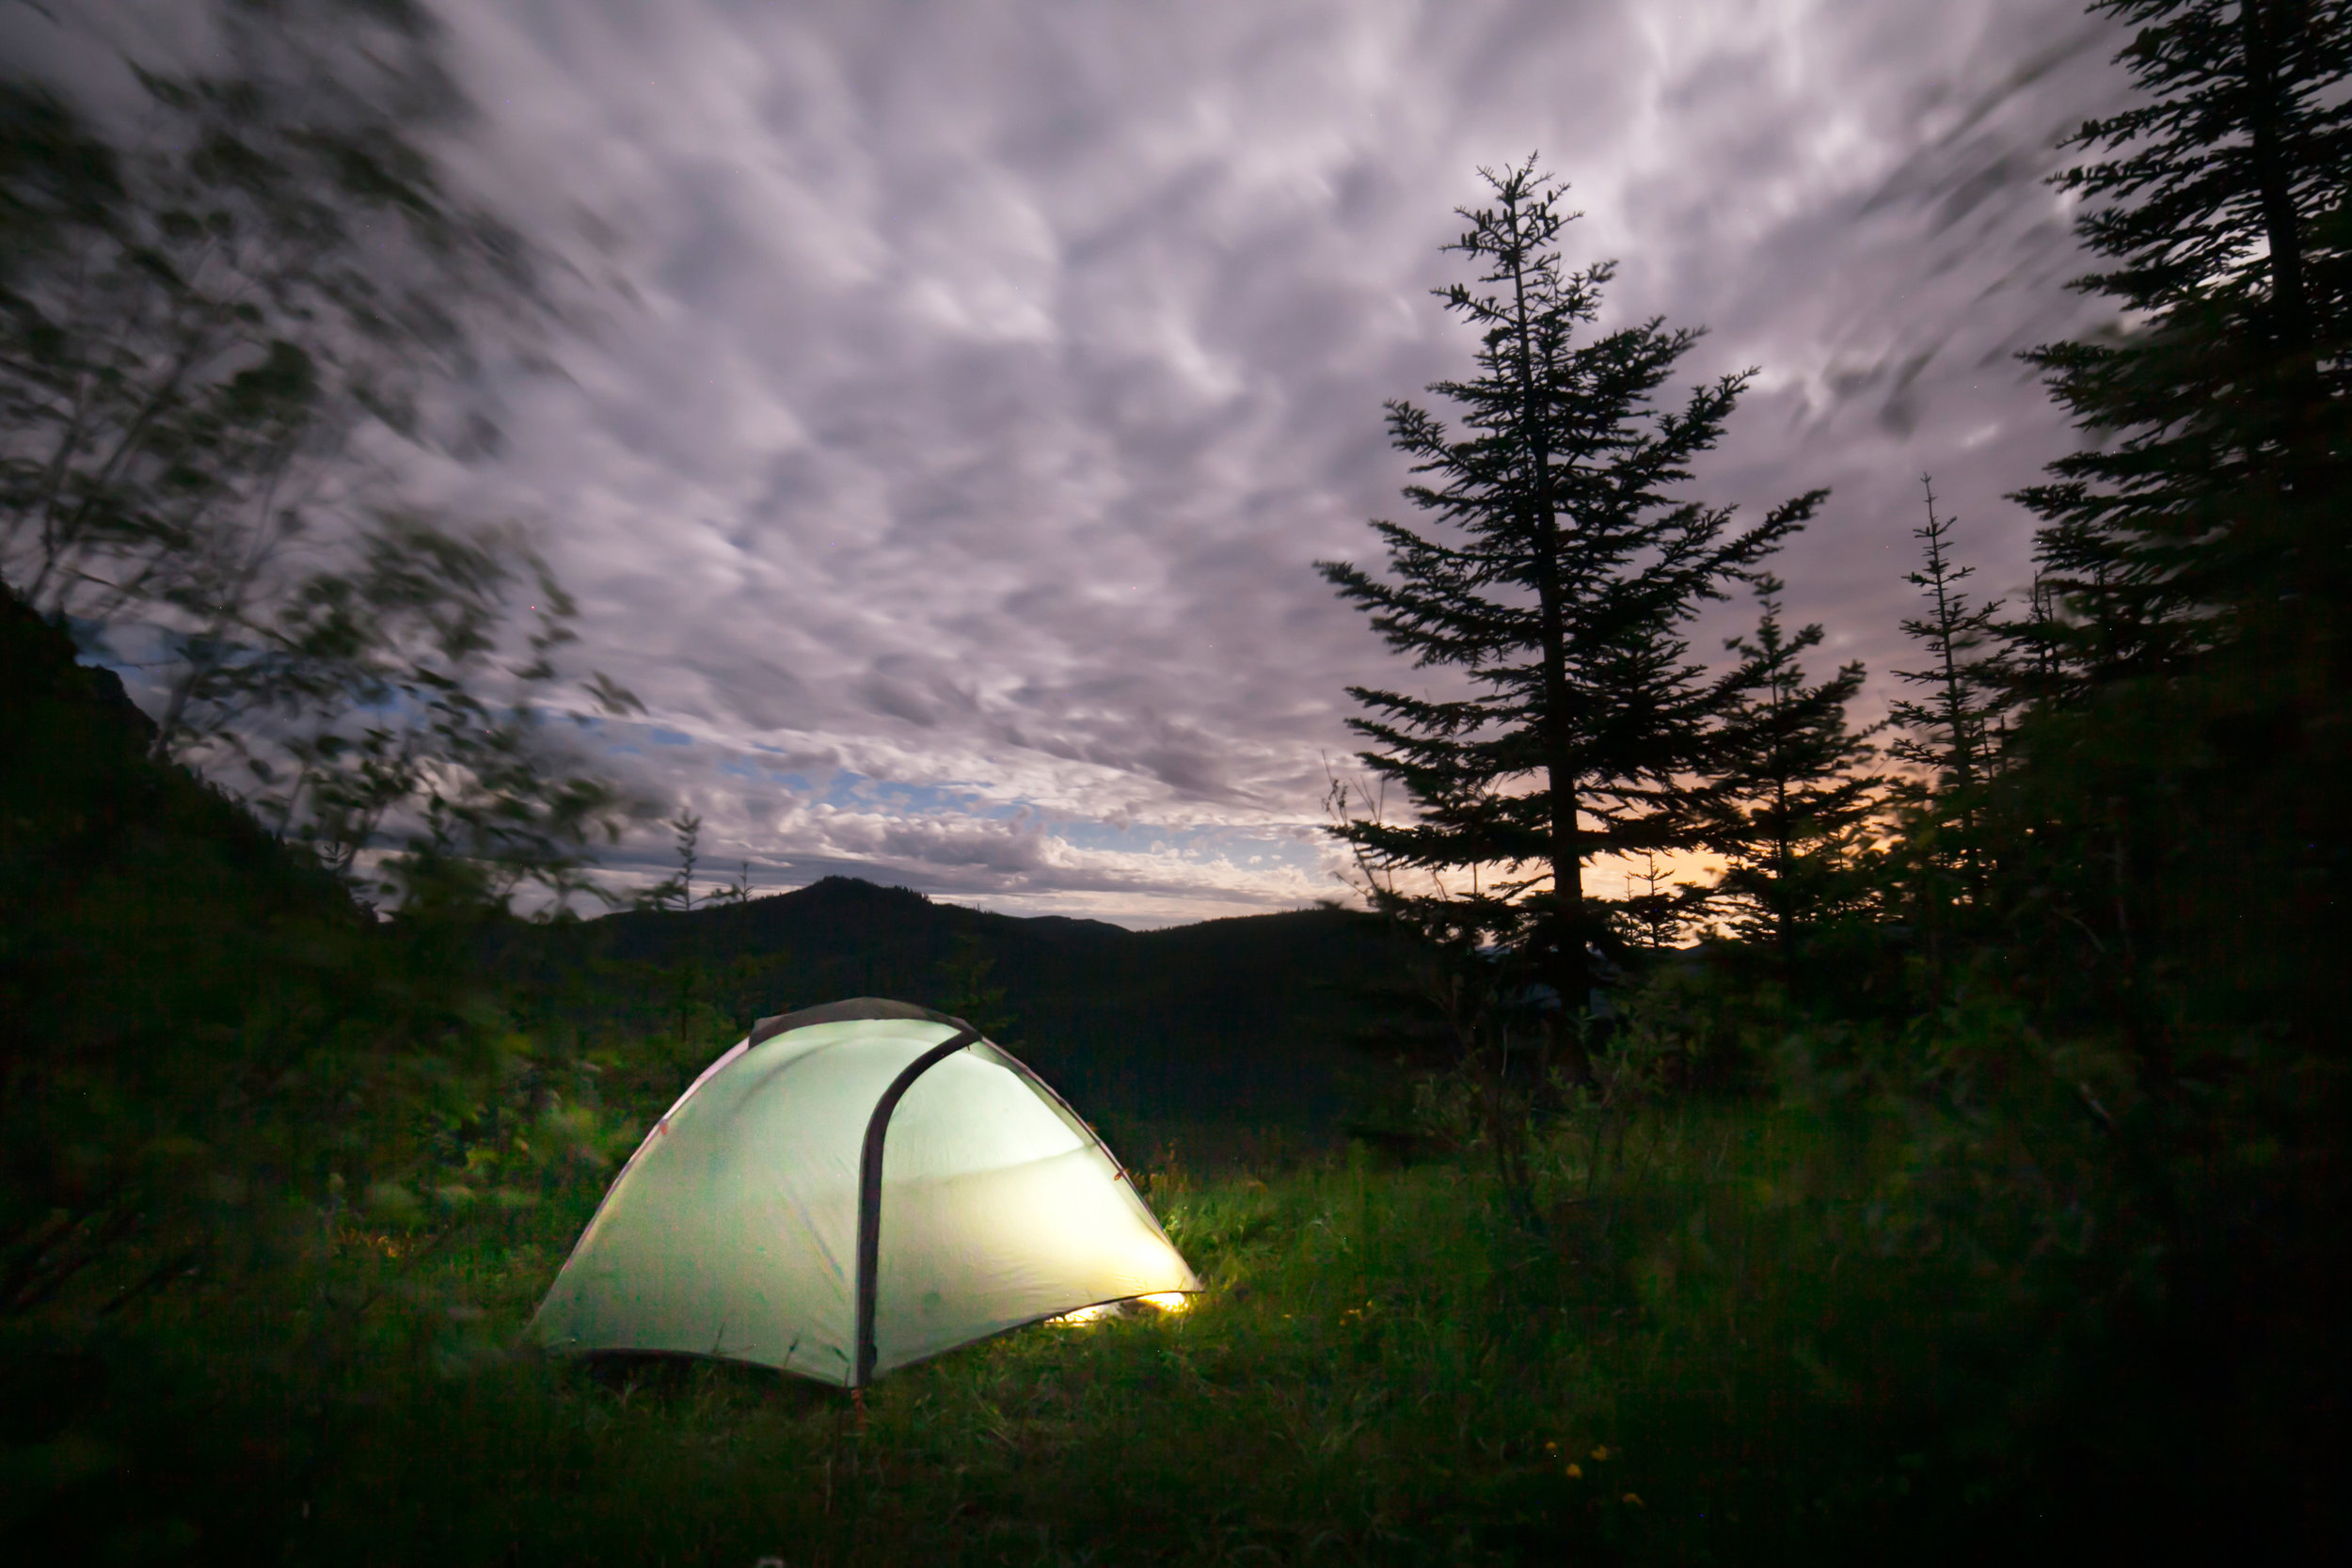 077Travel_Adventure_Outdoor_Photography_Outlive_Creative_WASHINGTON_St. Helens_Dog_Tent_Camping.jpg